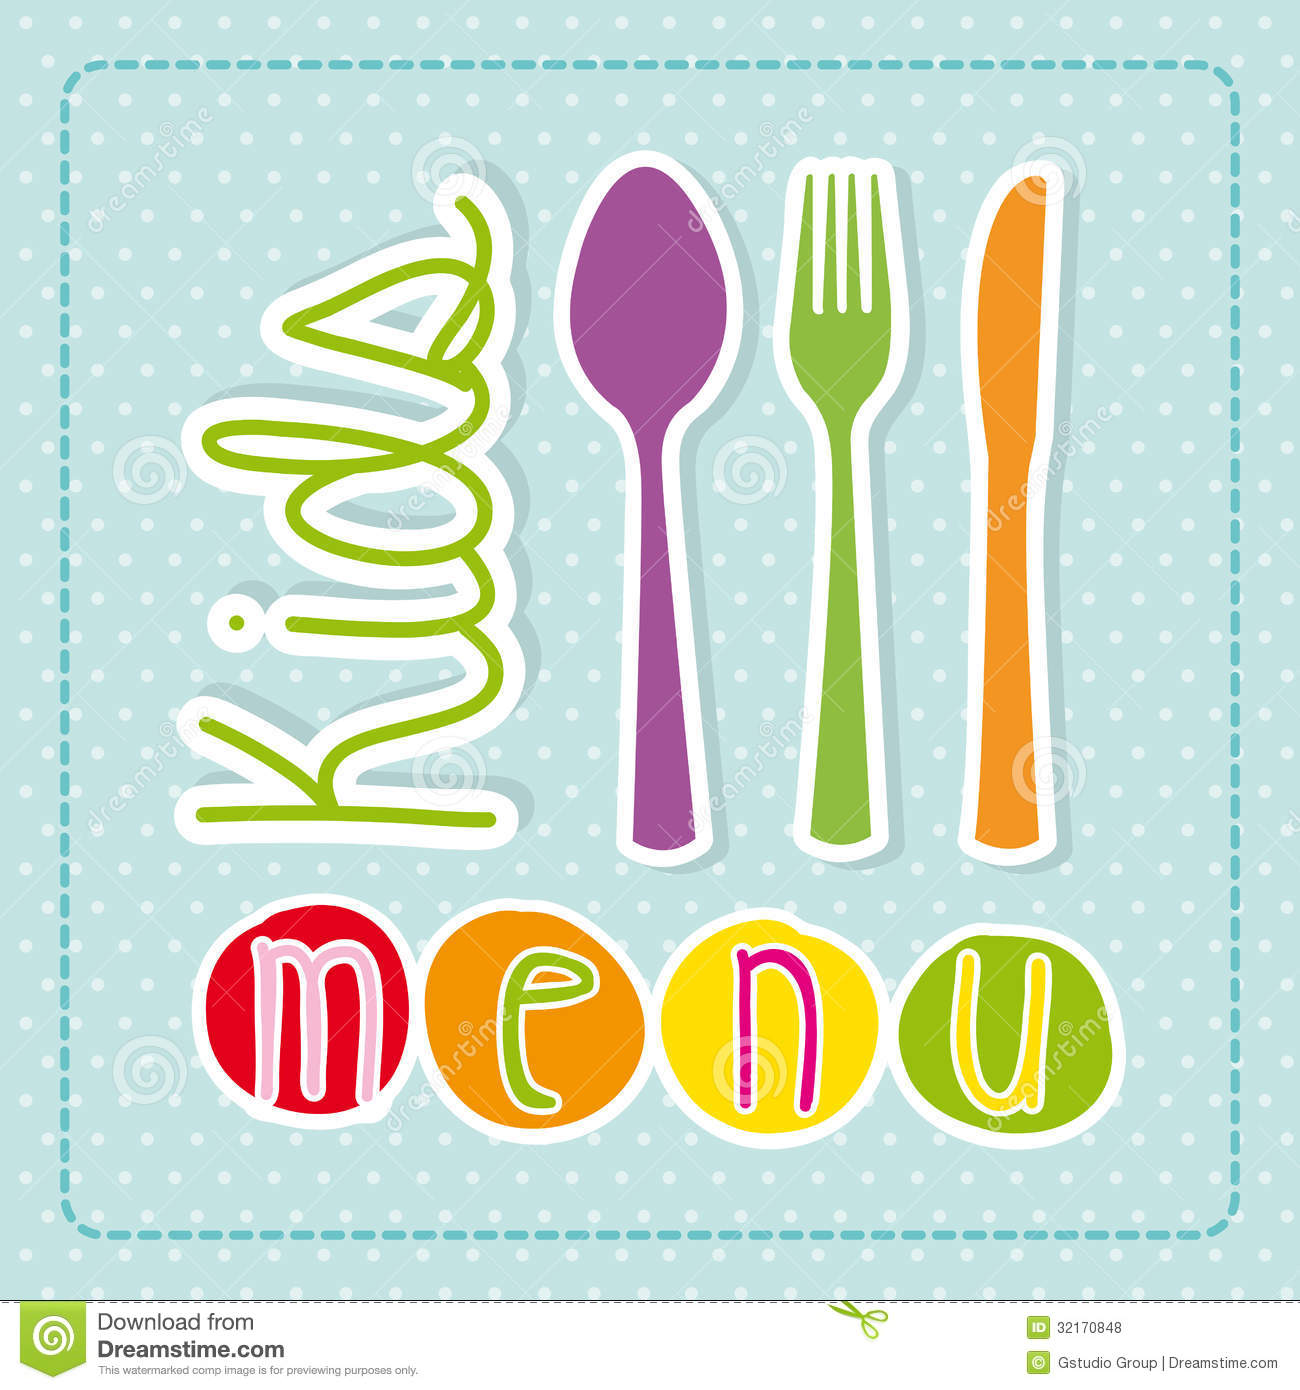 Kids Menu Royalty Free Stock Photos - Image: 32170848